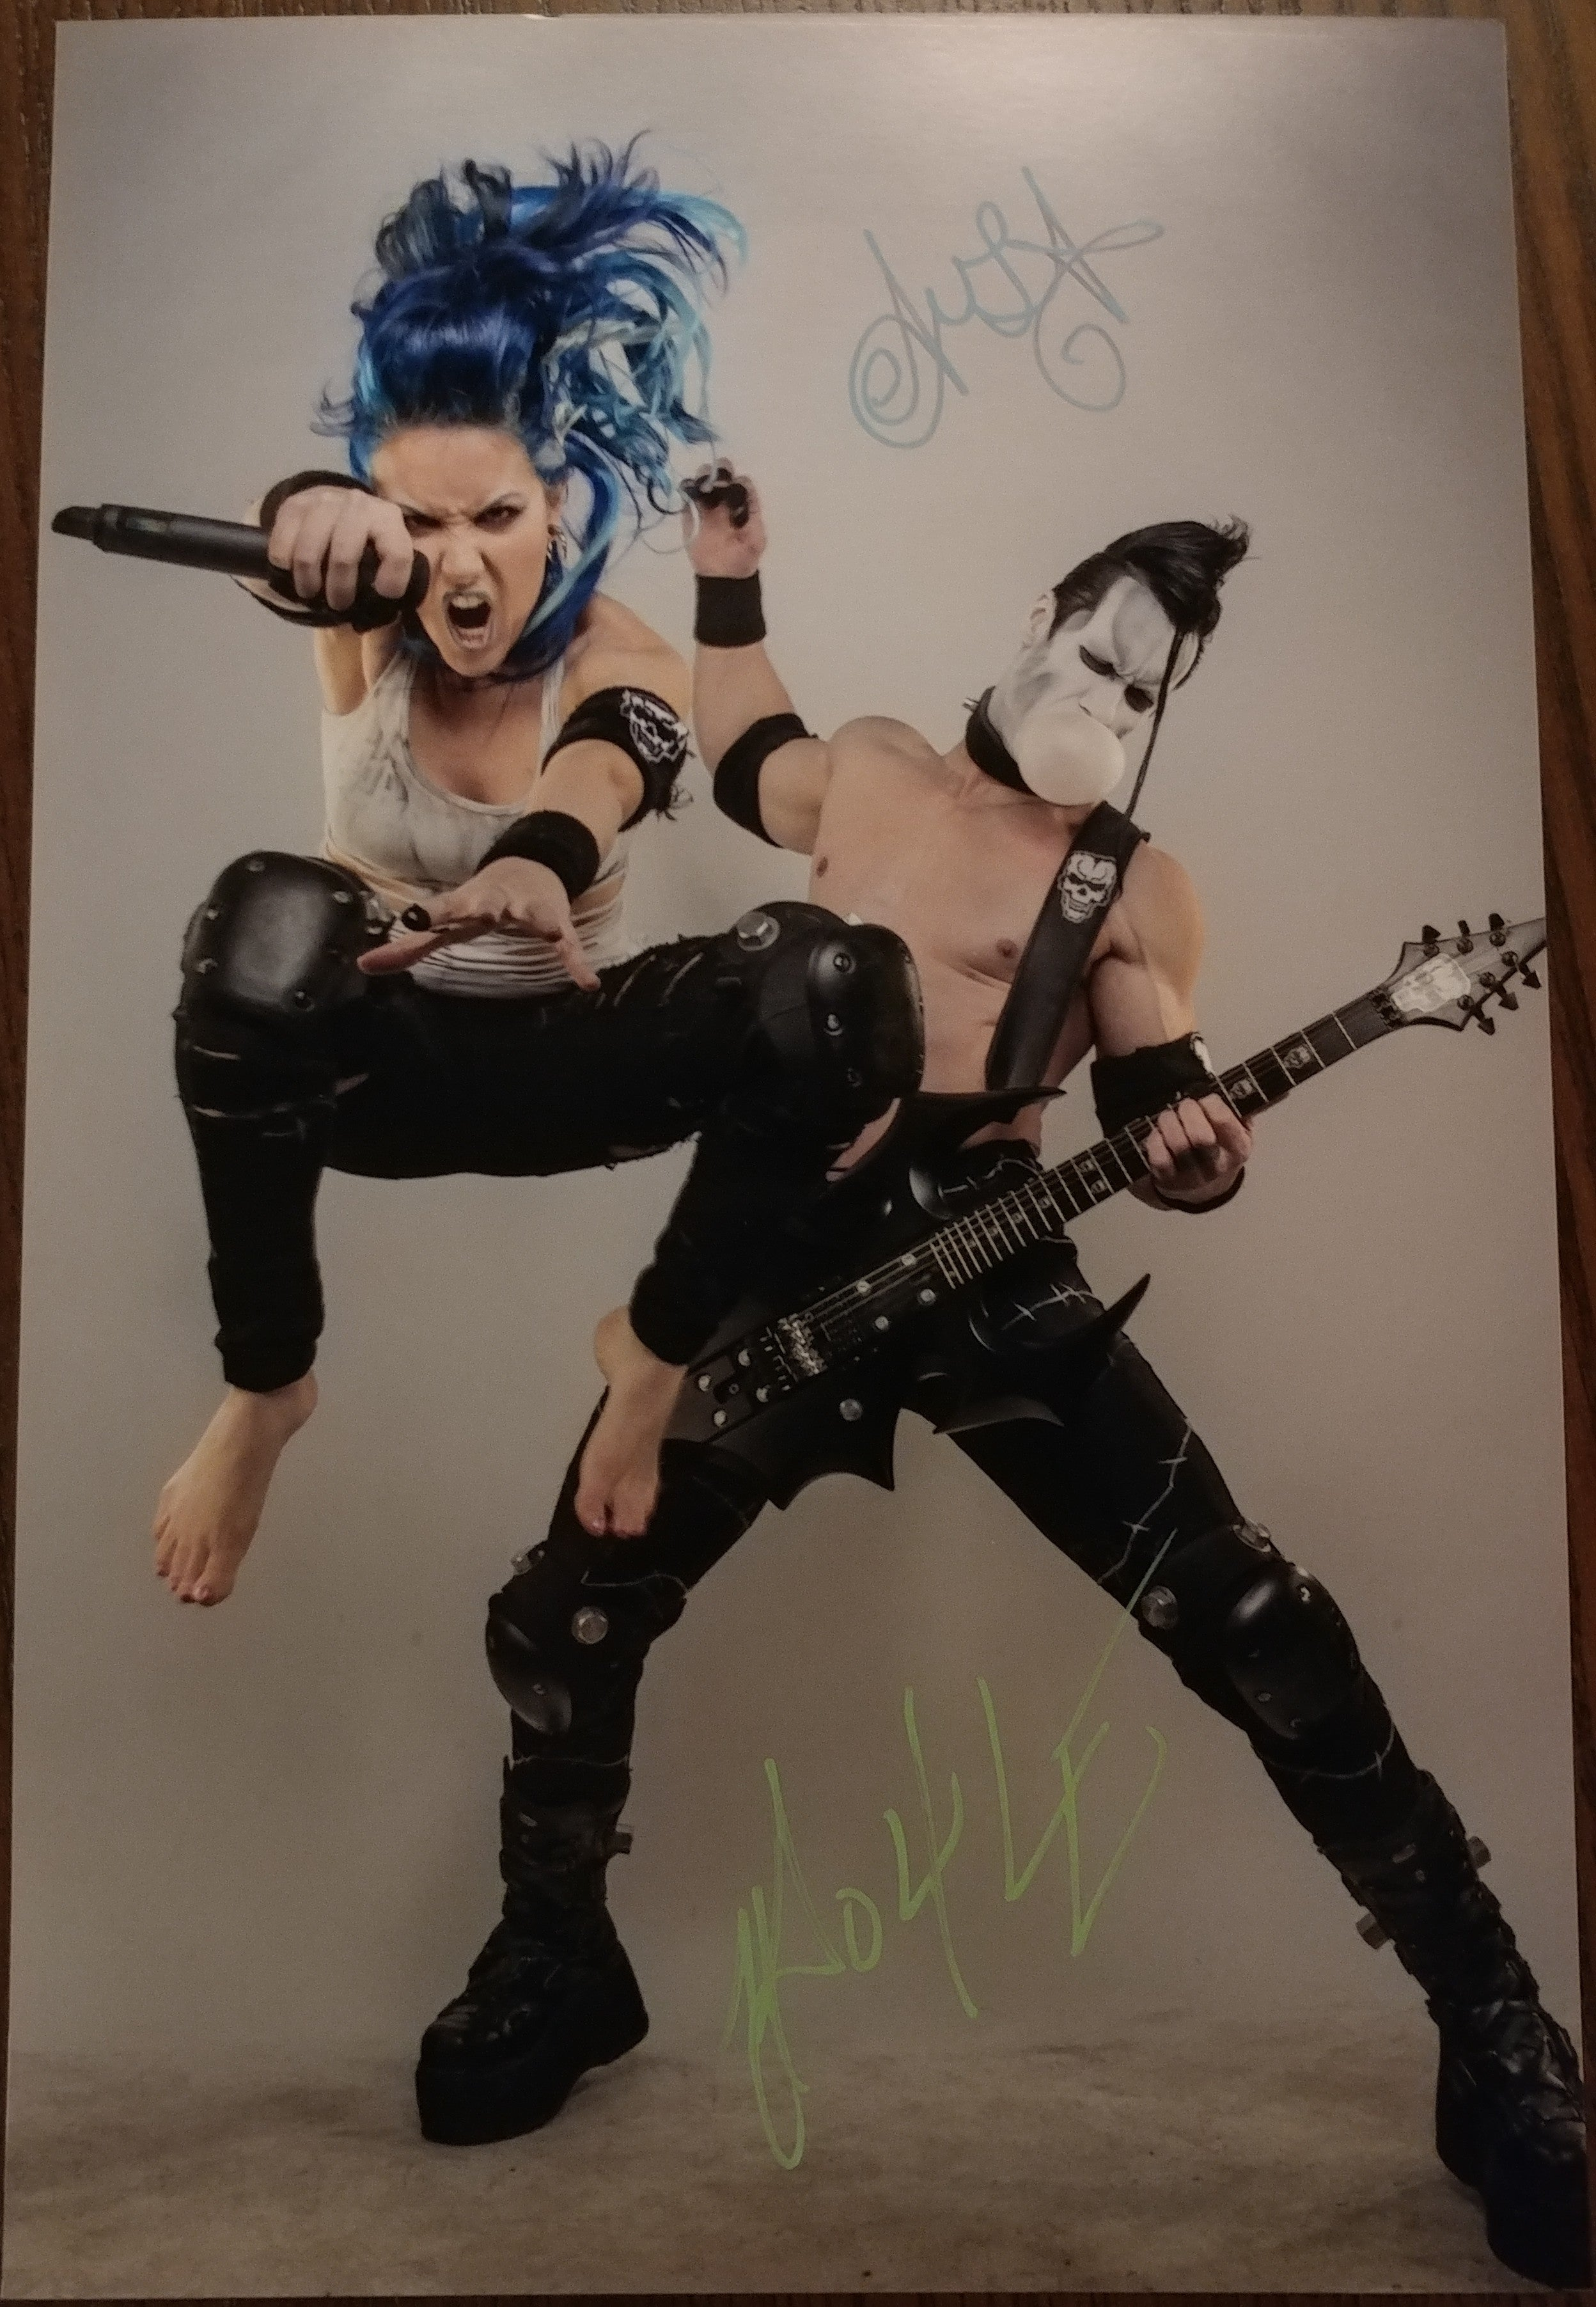 Alissa and Doyle - Jump signed 8x12 (damaged)